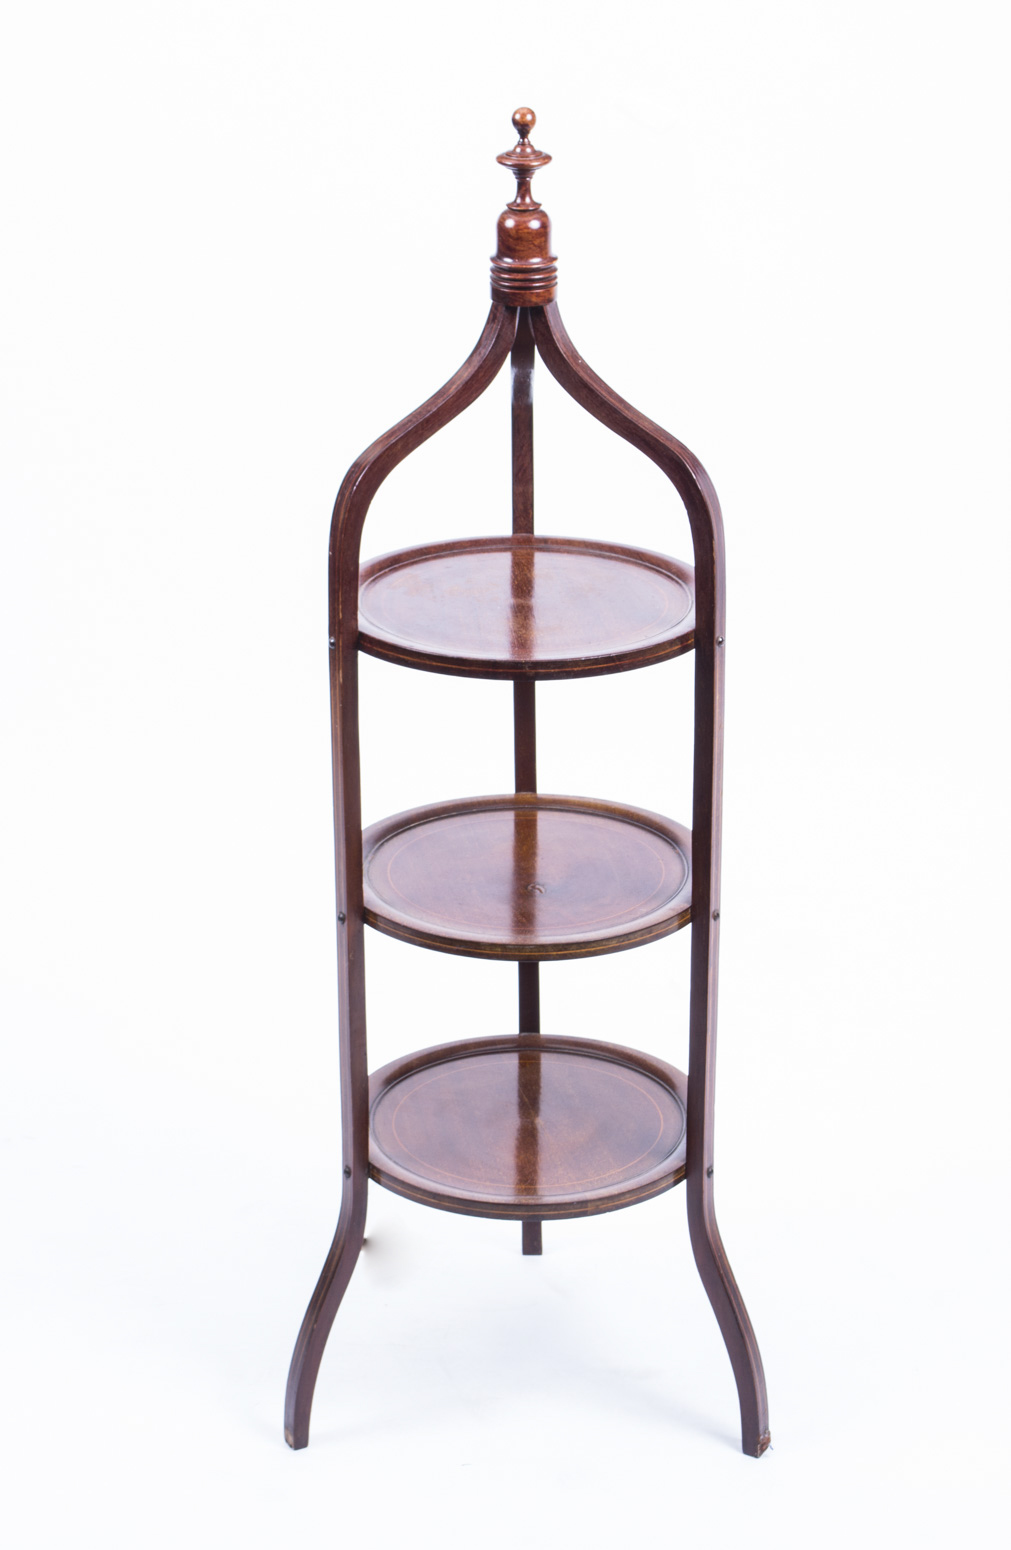 Antique Edwardian Mahogany 3 Tier Cake Stand C 1900 Ref